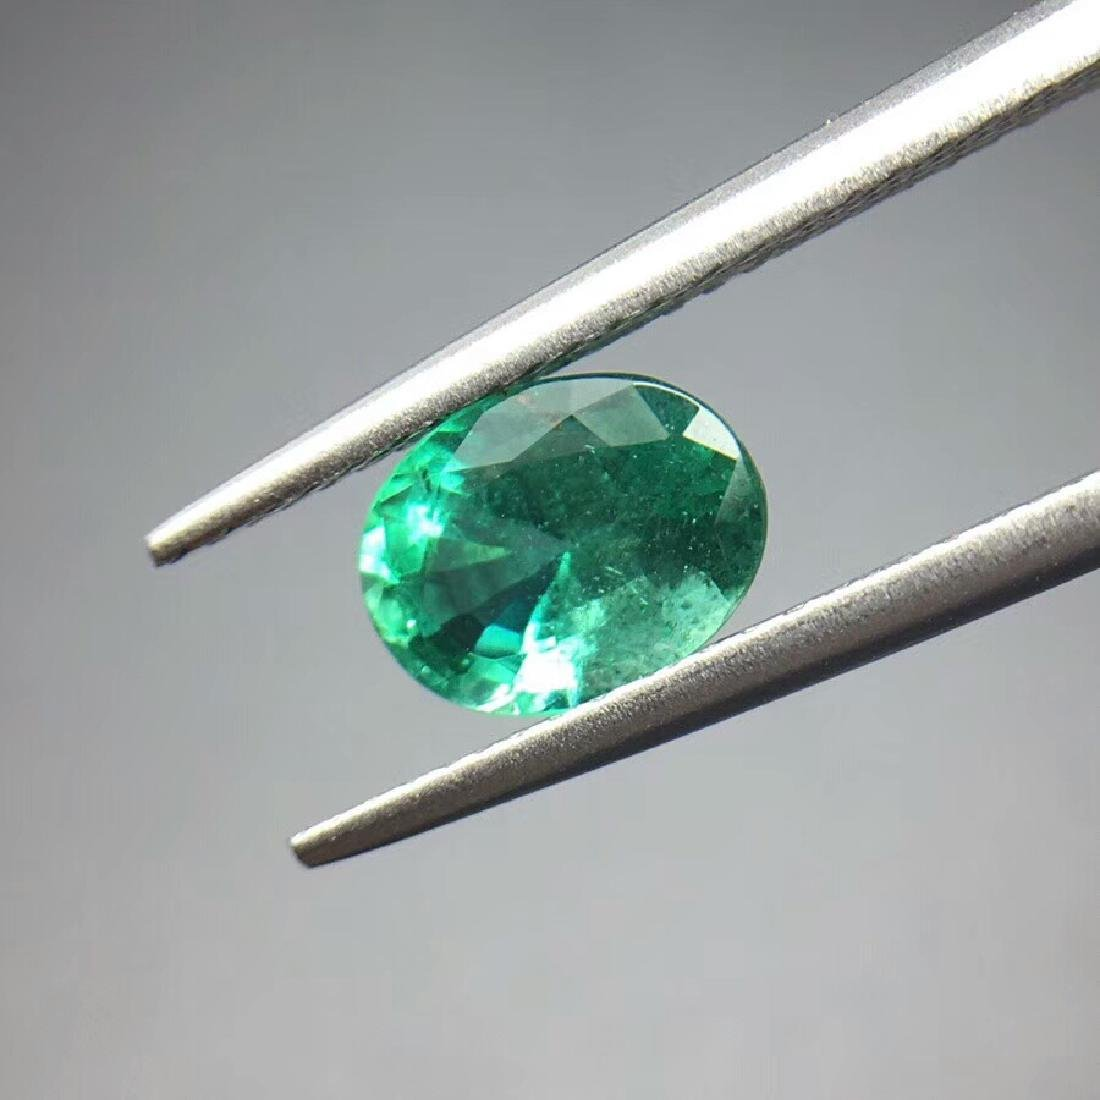 1.21ct Emerald 5.7*7.8*4.2 mm Oval Cut - 3